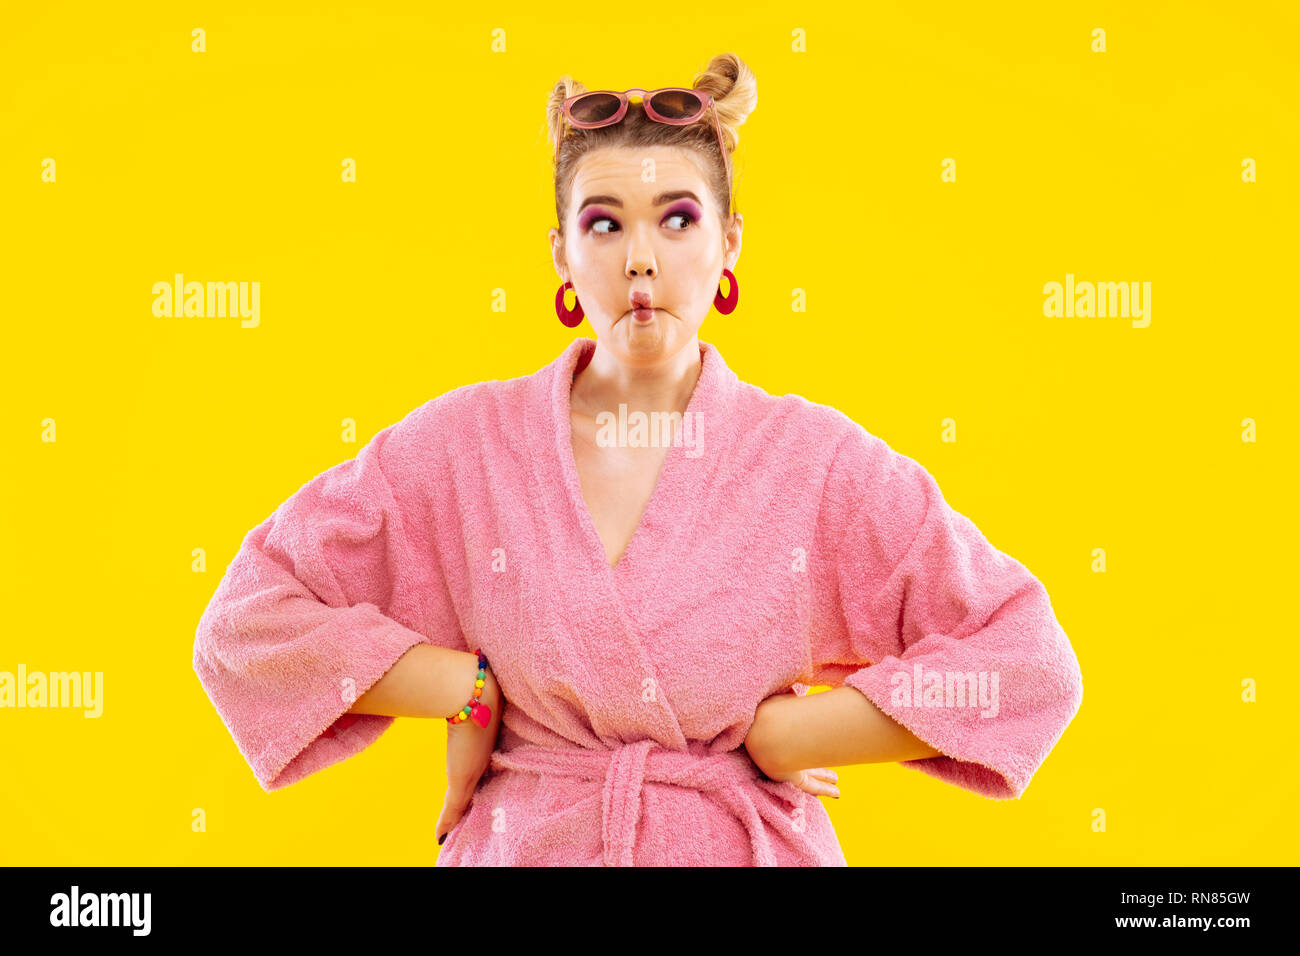 Cheerful woman with pink eye shades making funny face - Stock Image